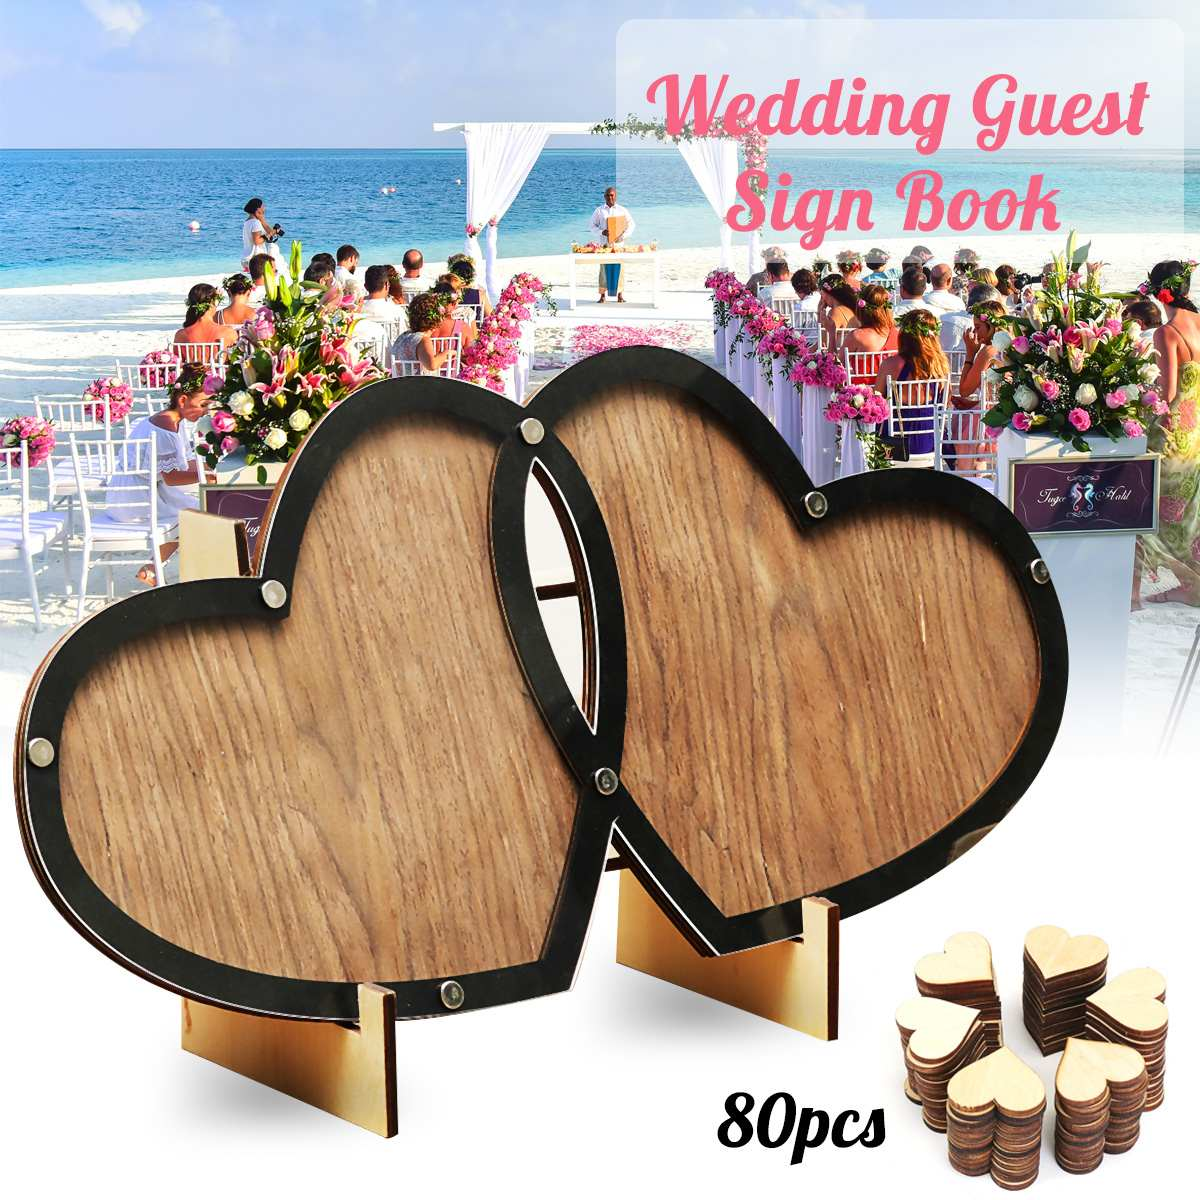 Personalized Wooden Hearts Wood Wedding Guest Book Double Heart Memory Visit Sign Book Guestbook Party Decor Ornaments